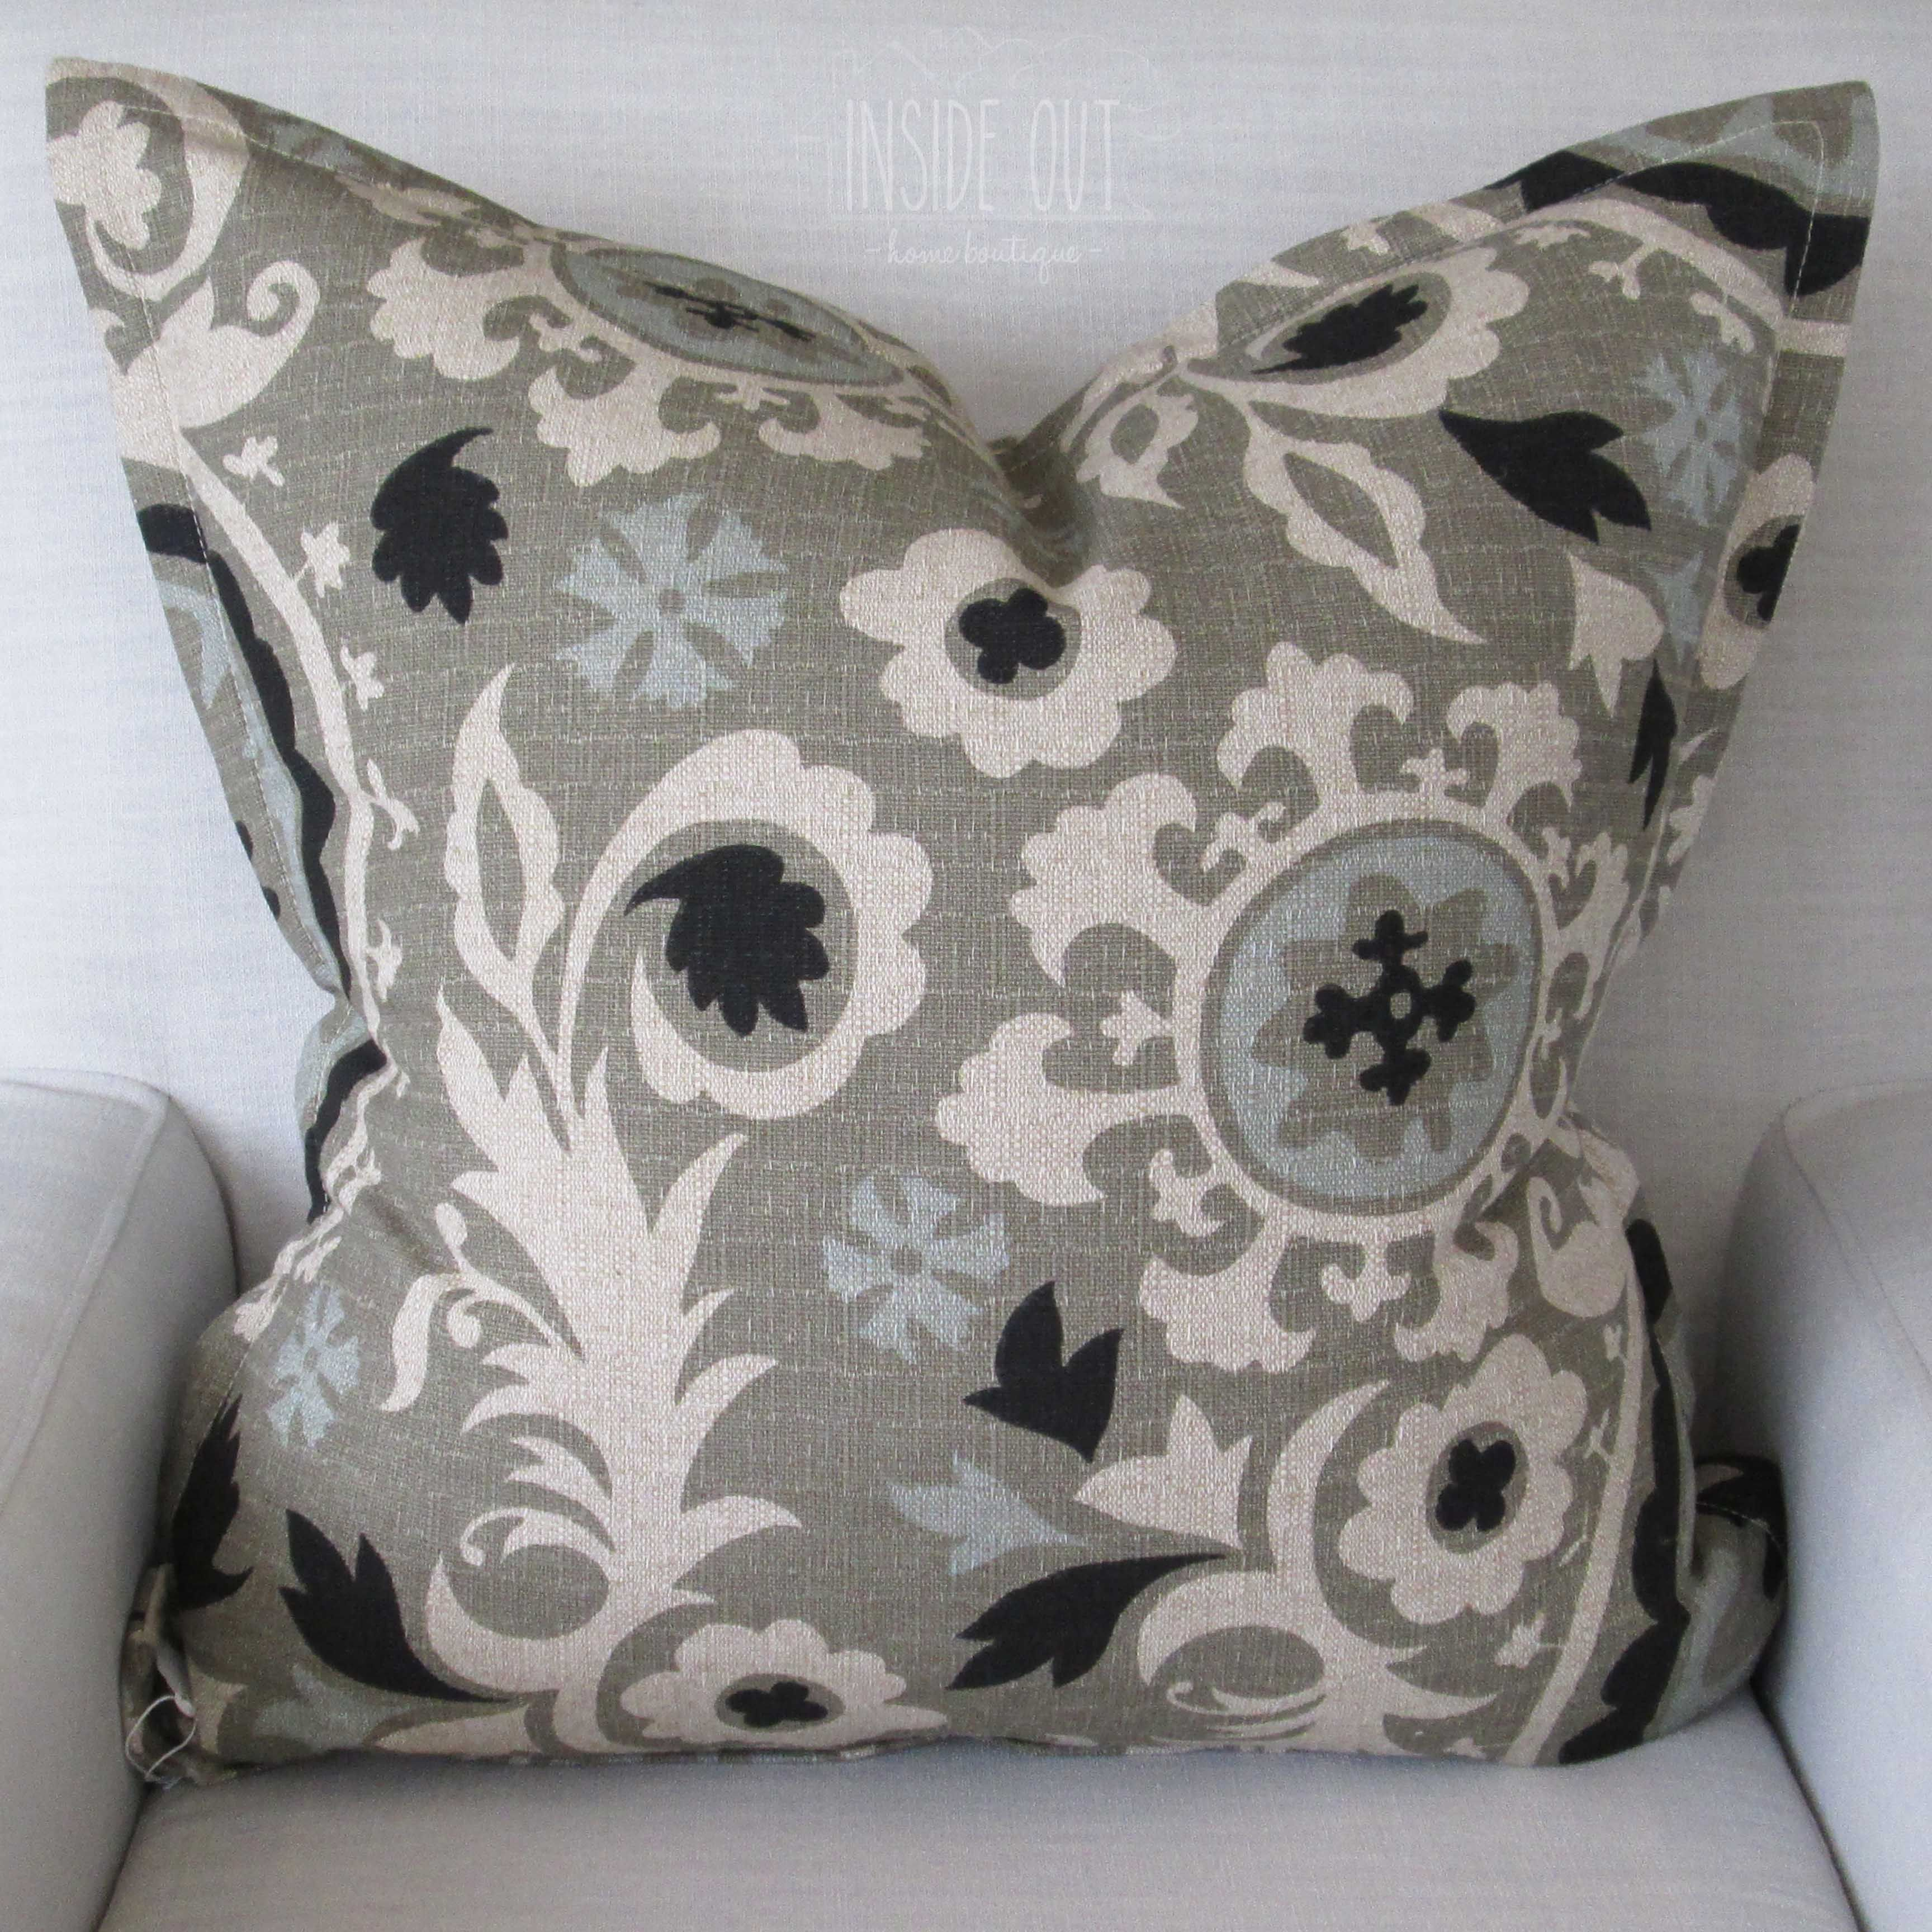 Tribal Flax - 60 x 60 - Inside Out Home Boutique - Not in stock - Available for order online at www.insideouthb.co.za